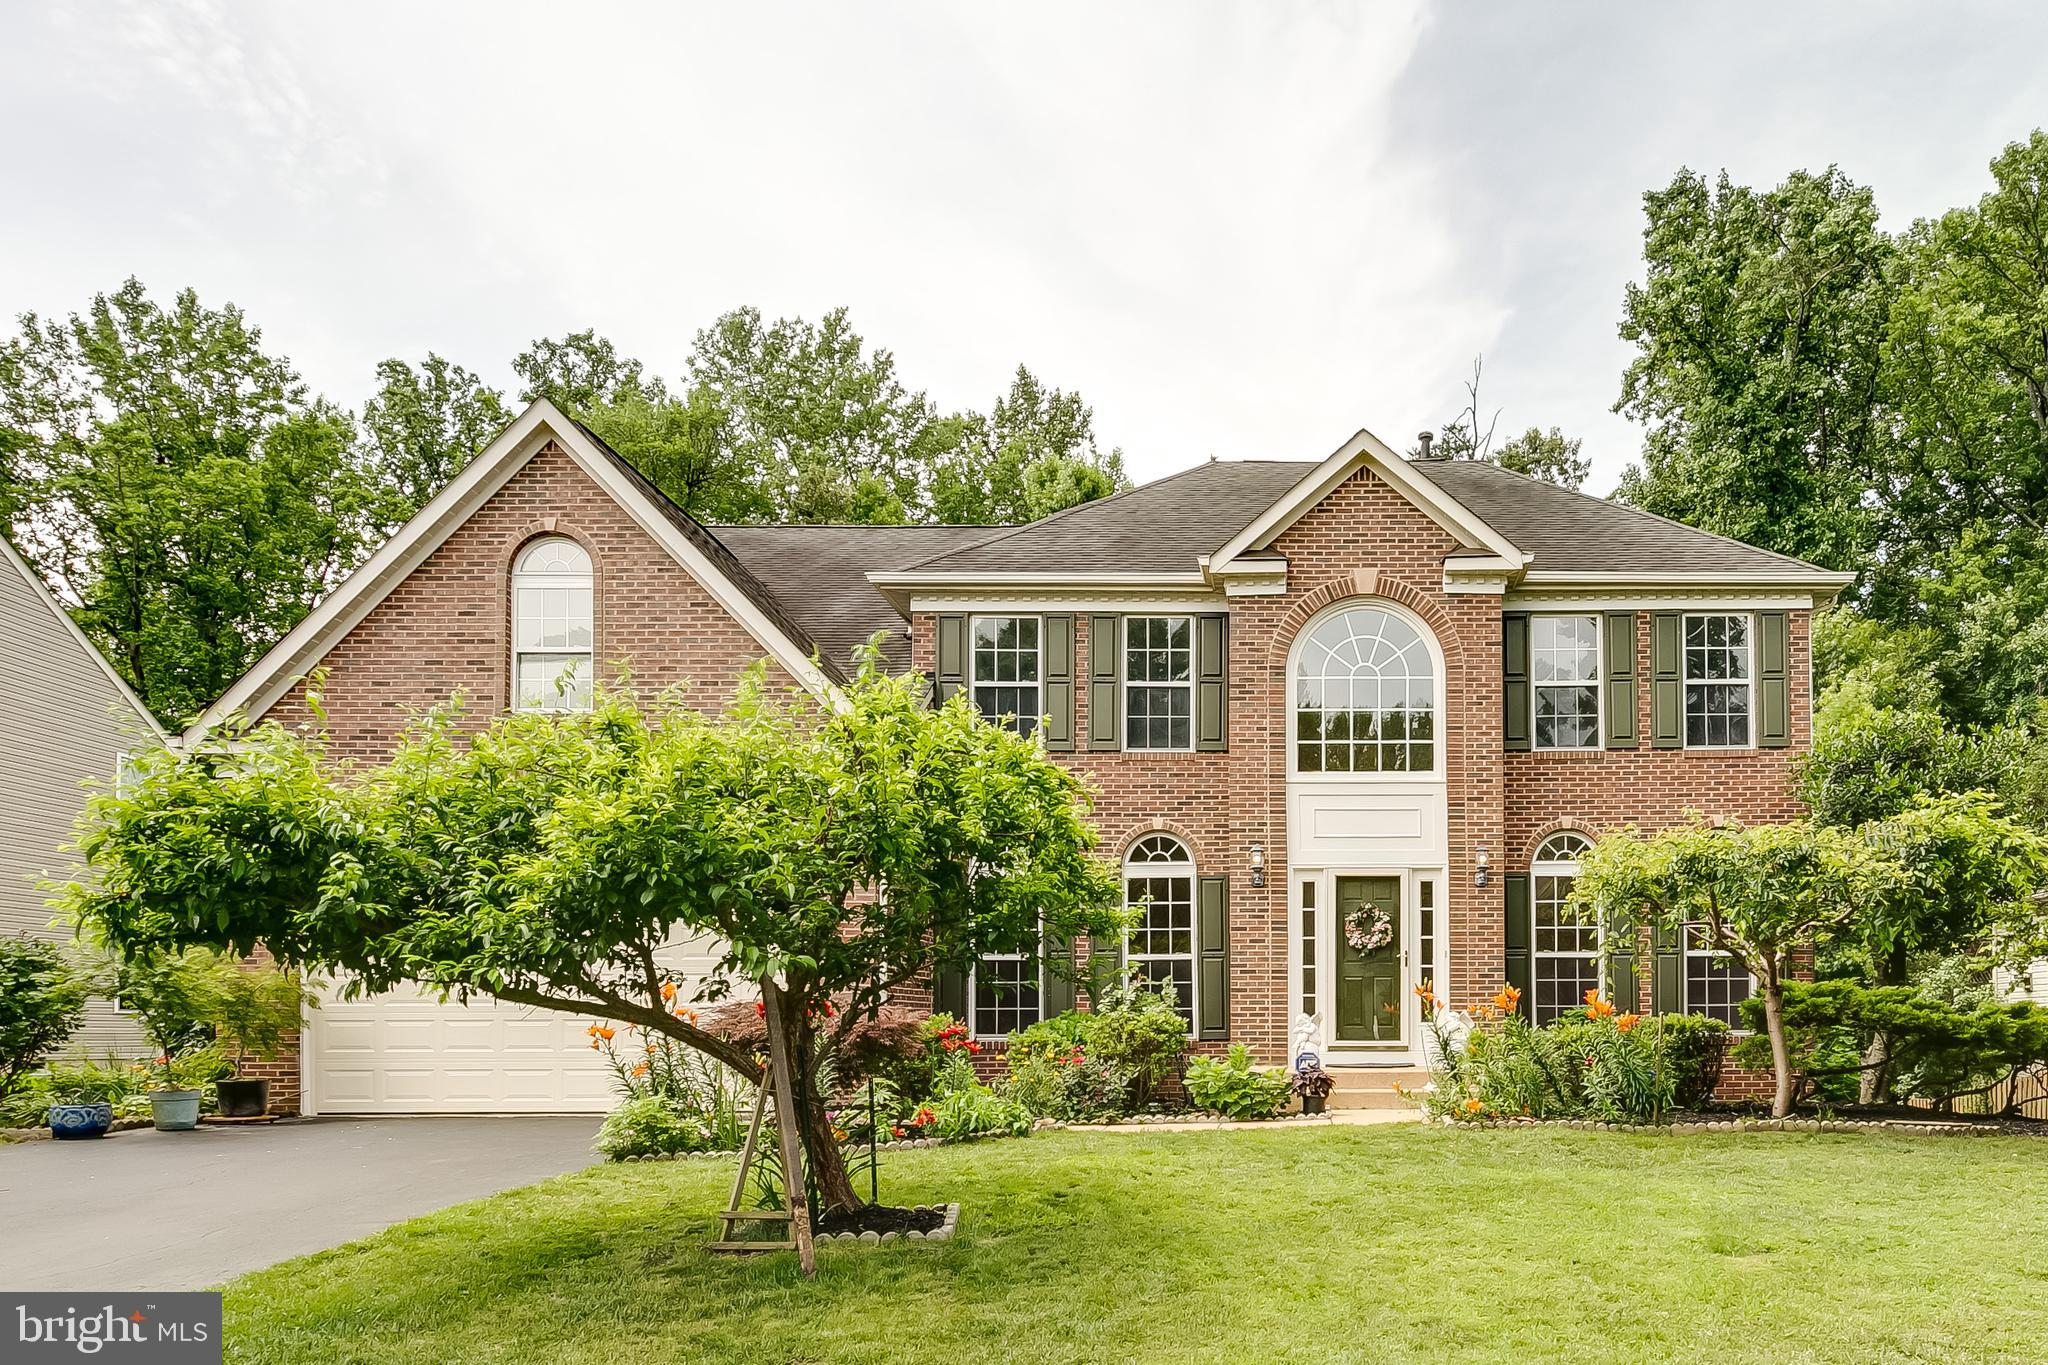 STUNNING HOME in the neighborhood, BRICK FRONT COLONIAL, 2-Story Foyer with OPEN FLOOR PLAN in a nice, quiet wooded neighborhood! LOCATION! LOCATION! LOCATION! Commuter's dream: few minutes to I-95, FX CO Prky, Metro Rail & Buses, walking distance to Fort Belvoir Military Base; Five minutes to shopping center, Wegman, gym fitness facility, hospital, parks, close to Kingstowne, ...; Den, Separate Formal Dining, Living room ML  with CROW MOLDINGS; GOURMET KITCHEN with New SS Appliances; MANY RECENT UPGRADES; New insulated steel/fiberglass garage doors with remotes; OAK DUAL STAIRCASE with Runners! HARDWOOD FLOORS, NEW CARPET, FRESH DESIGNER PAINT for ALL LEVELS;... MASTER BEDROOM with HIS&HER HUGE WALK-IN CLOSET; NICE SUNROOM ADDITION viewing mature flowers, trees (Japanese maple, maple, cherry, redbud trees, etc); LOVELY DECK overlooking GORGEOUS LARGE FLAT BACKYARD with the wooded area! WALK OUT BASEMENT with SPACIOUS REC ROOM